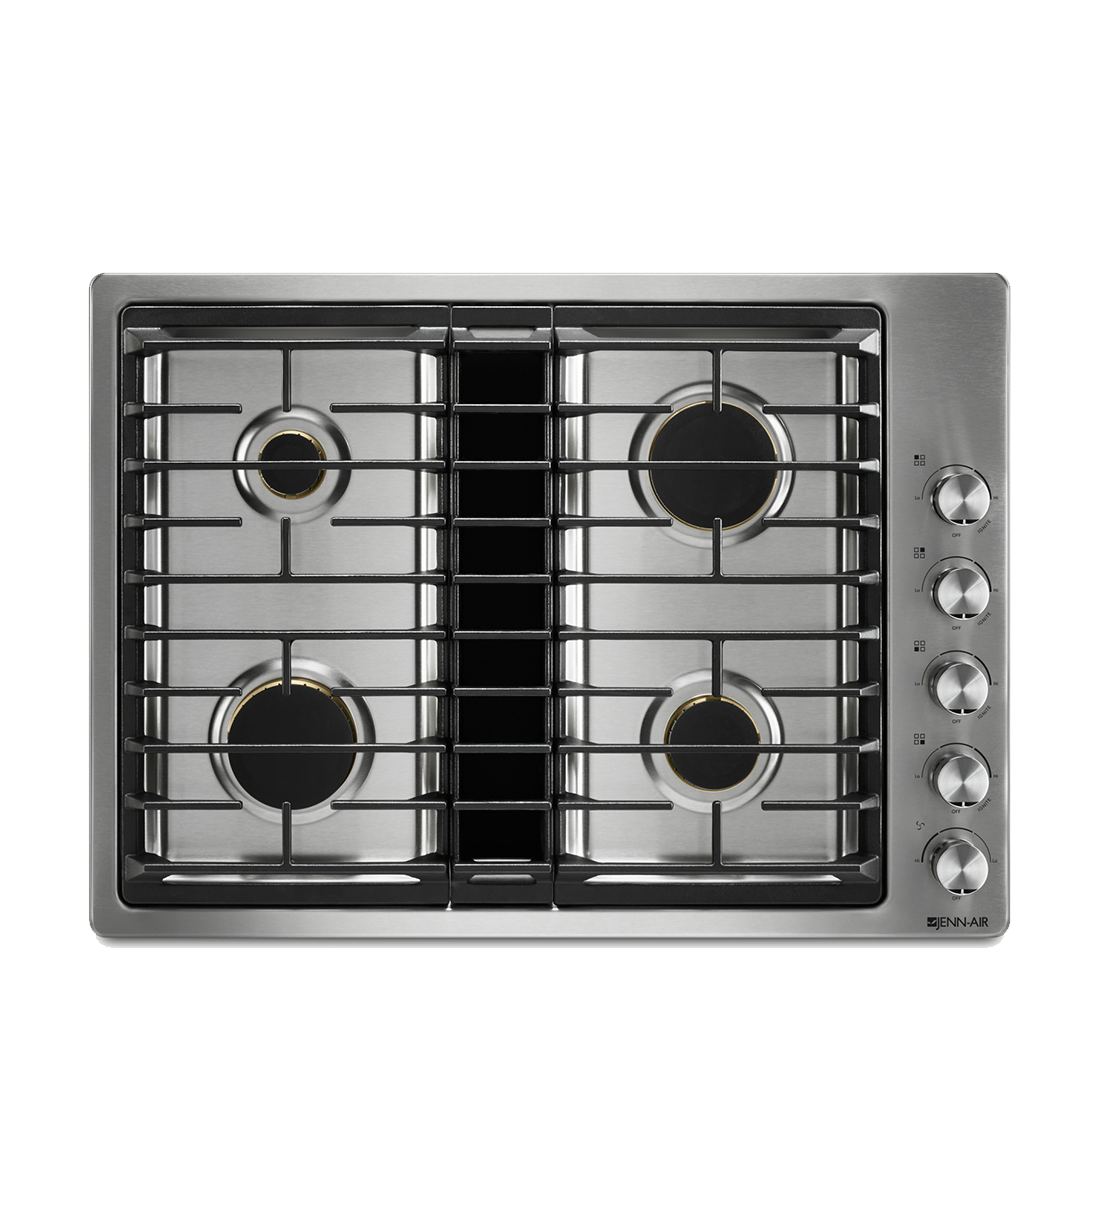 Jenn-Air Cooktop showcased by Corbeil Electro Store